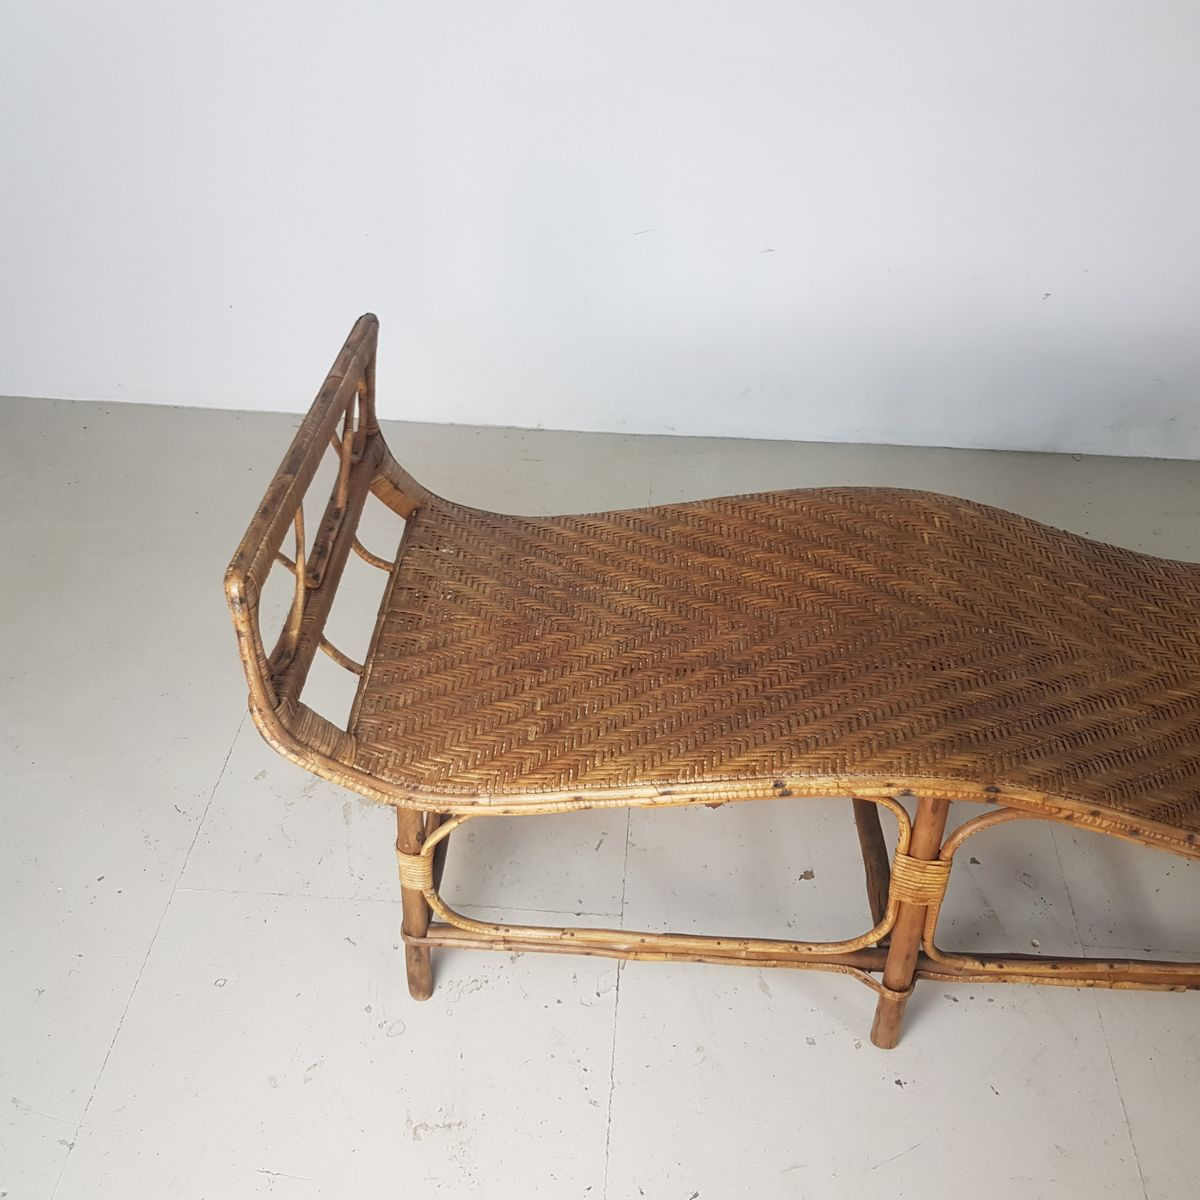 Bamboo Amp Rattan Chaise Lounge 1920s For Sale At Pamono